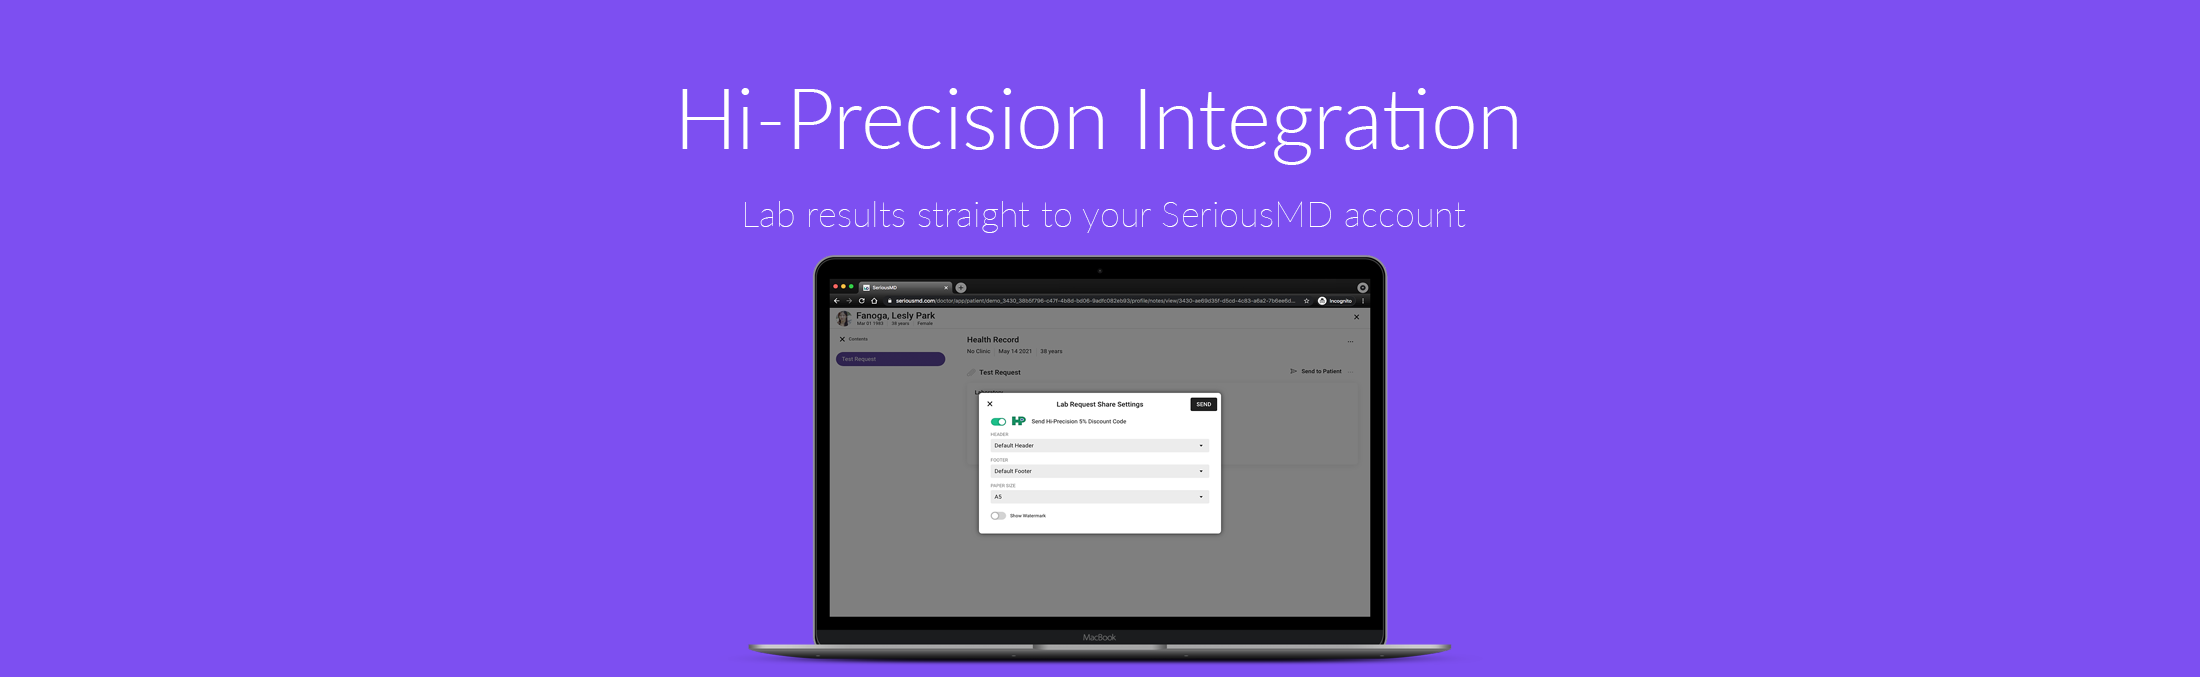 SeriousMD HiPrecision NowServing Integration